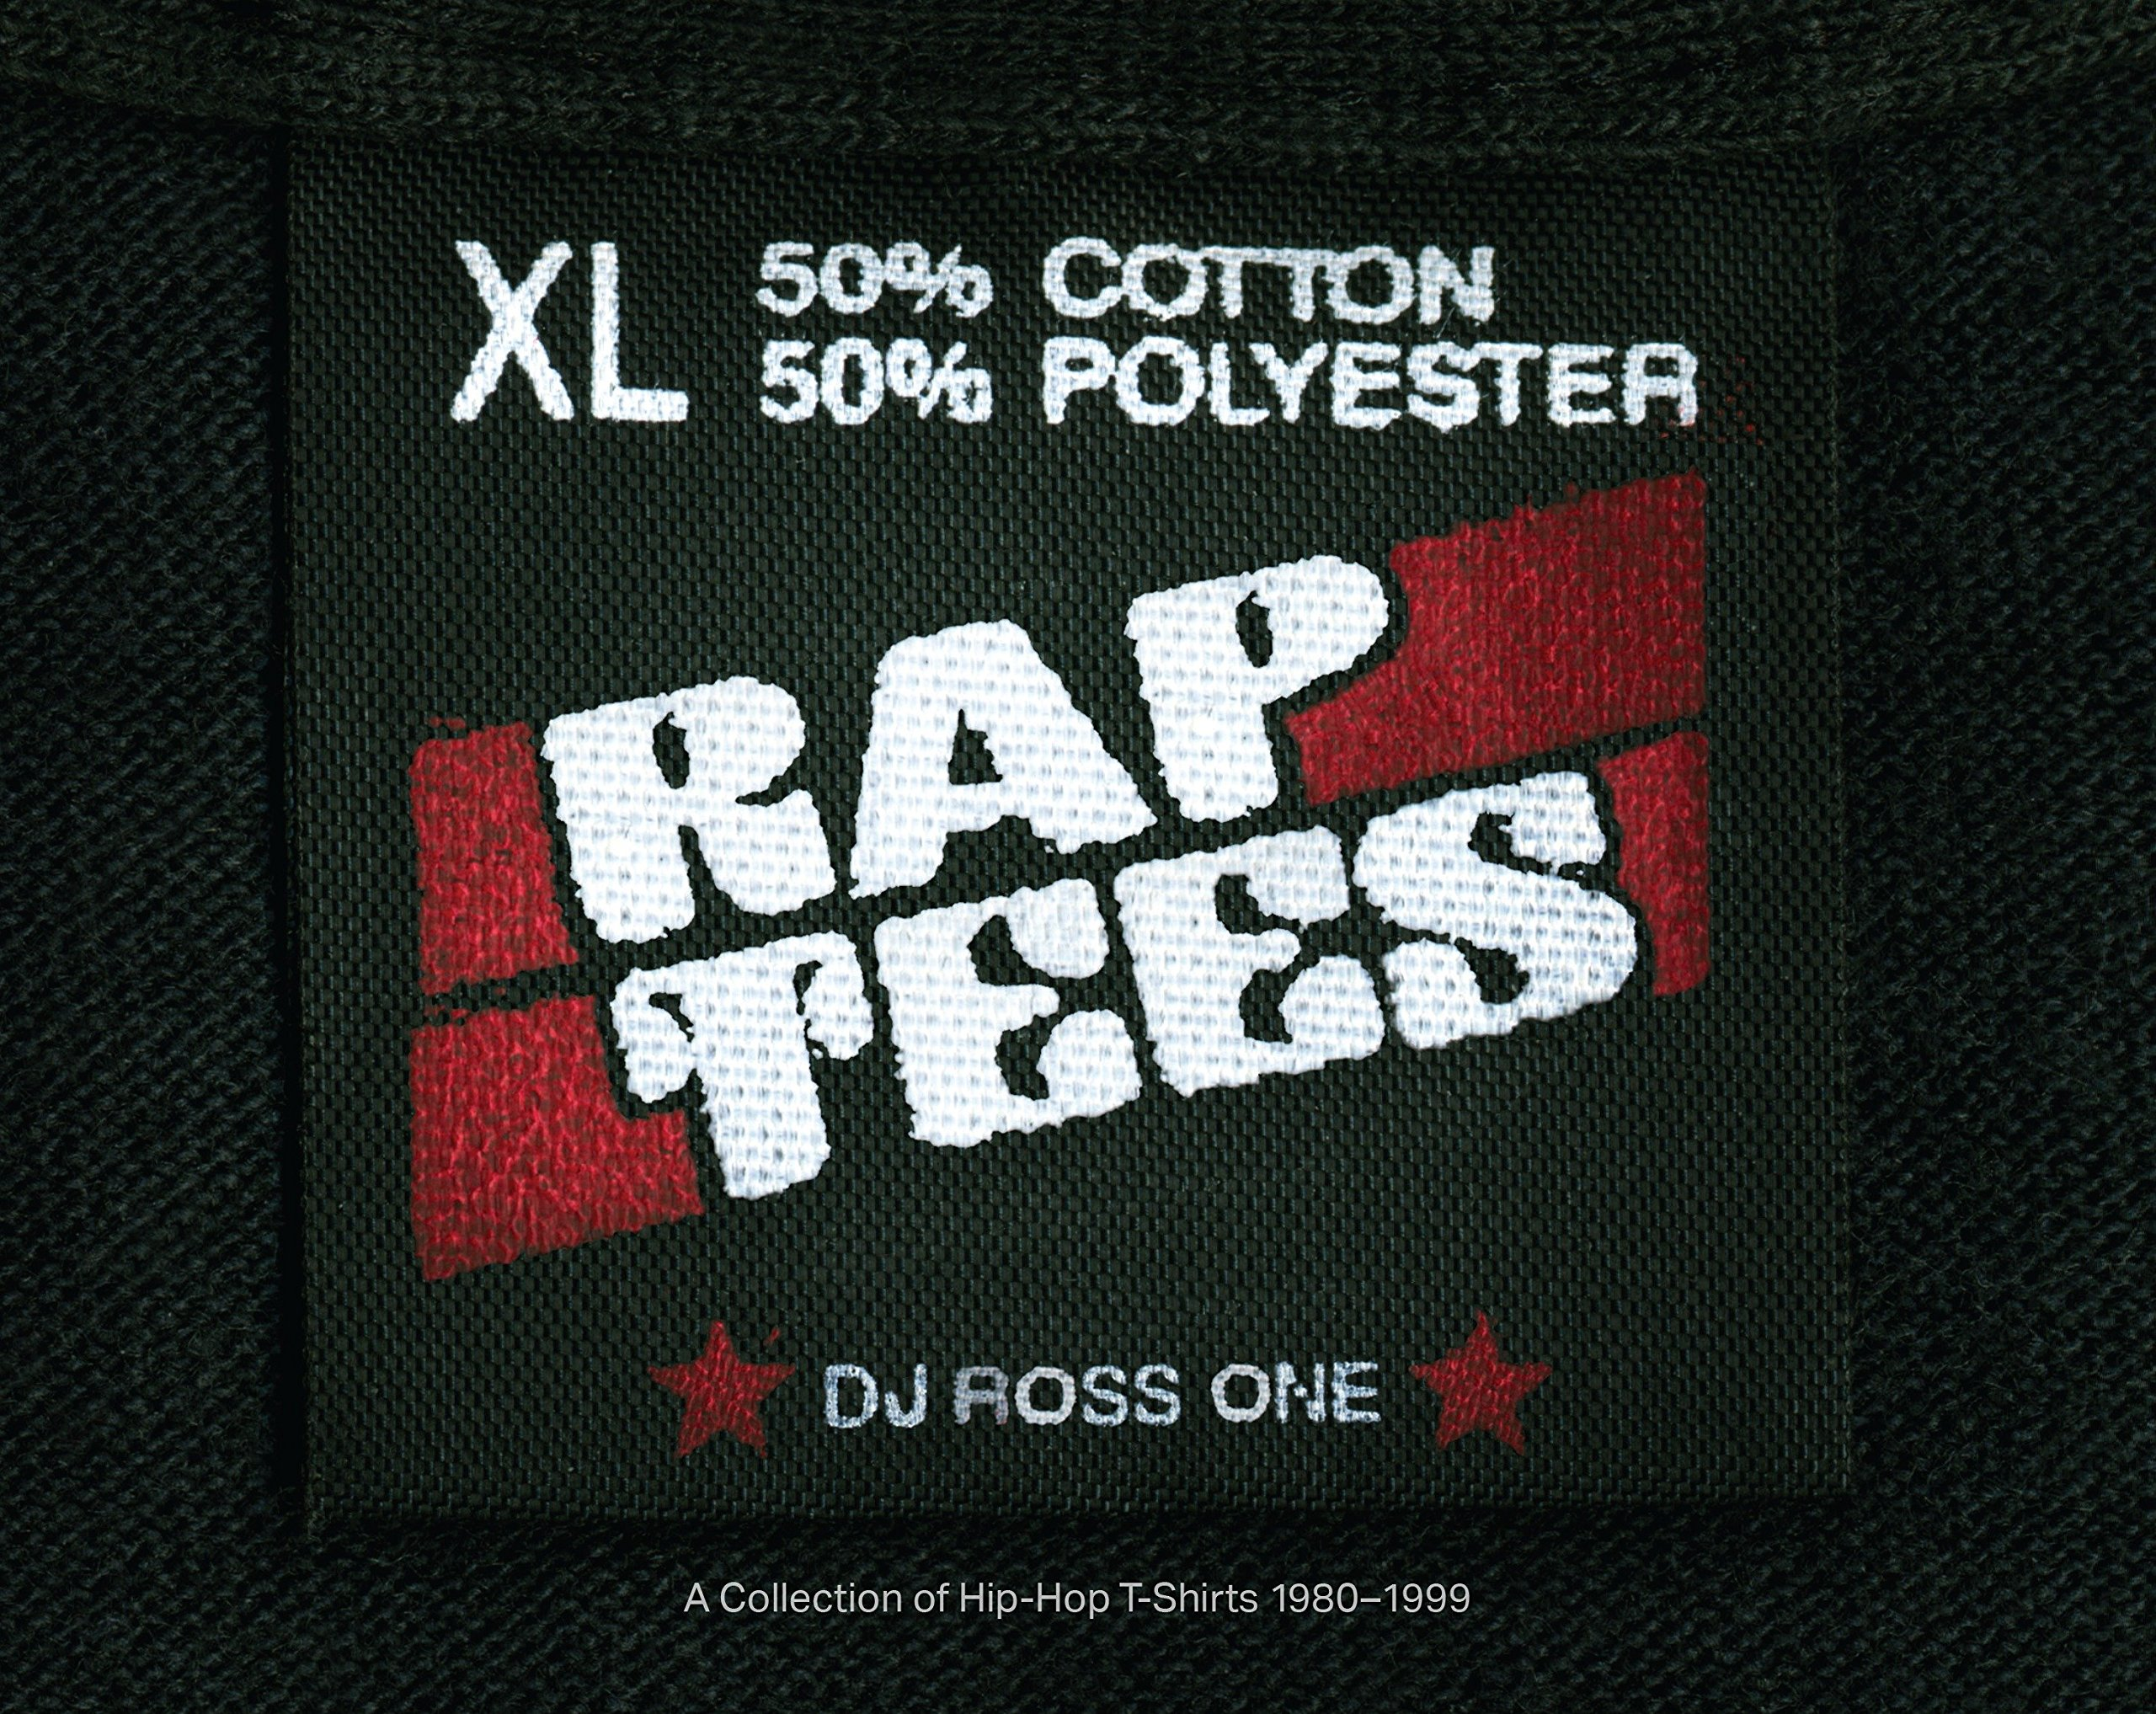 0f15a7219 Rap Tees: A Collection of Hip-Hop T-Shirts 1980-1999 Hardcover – November  3, 2015